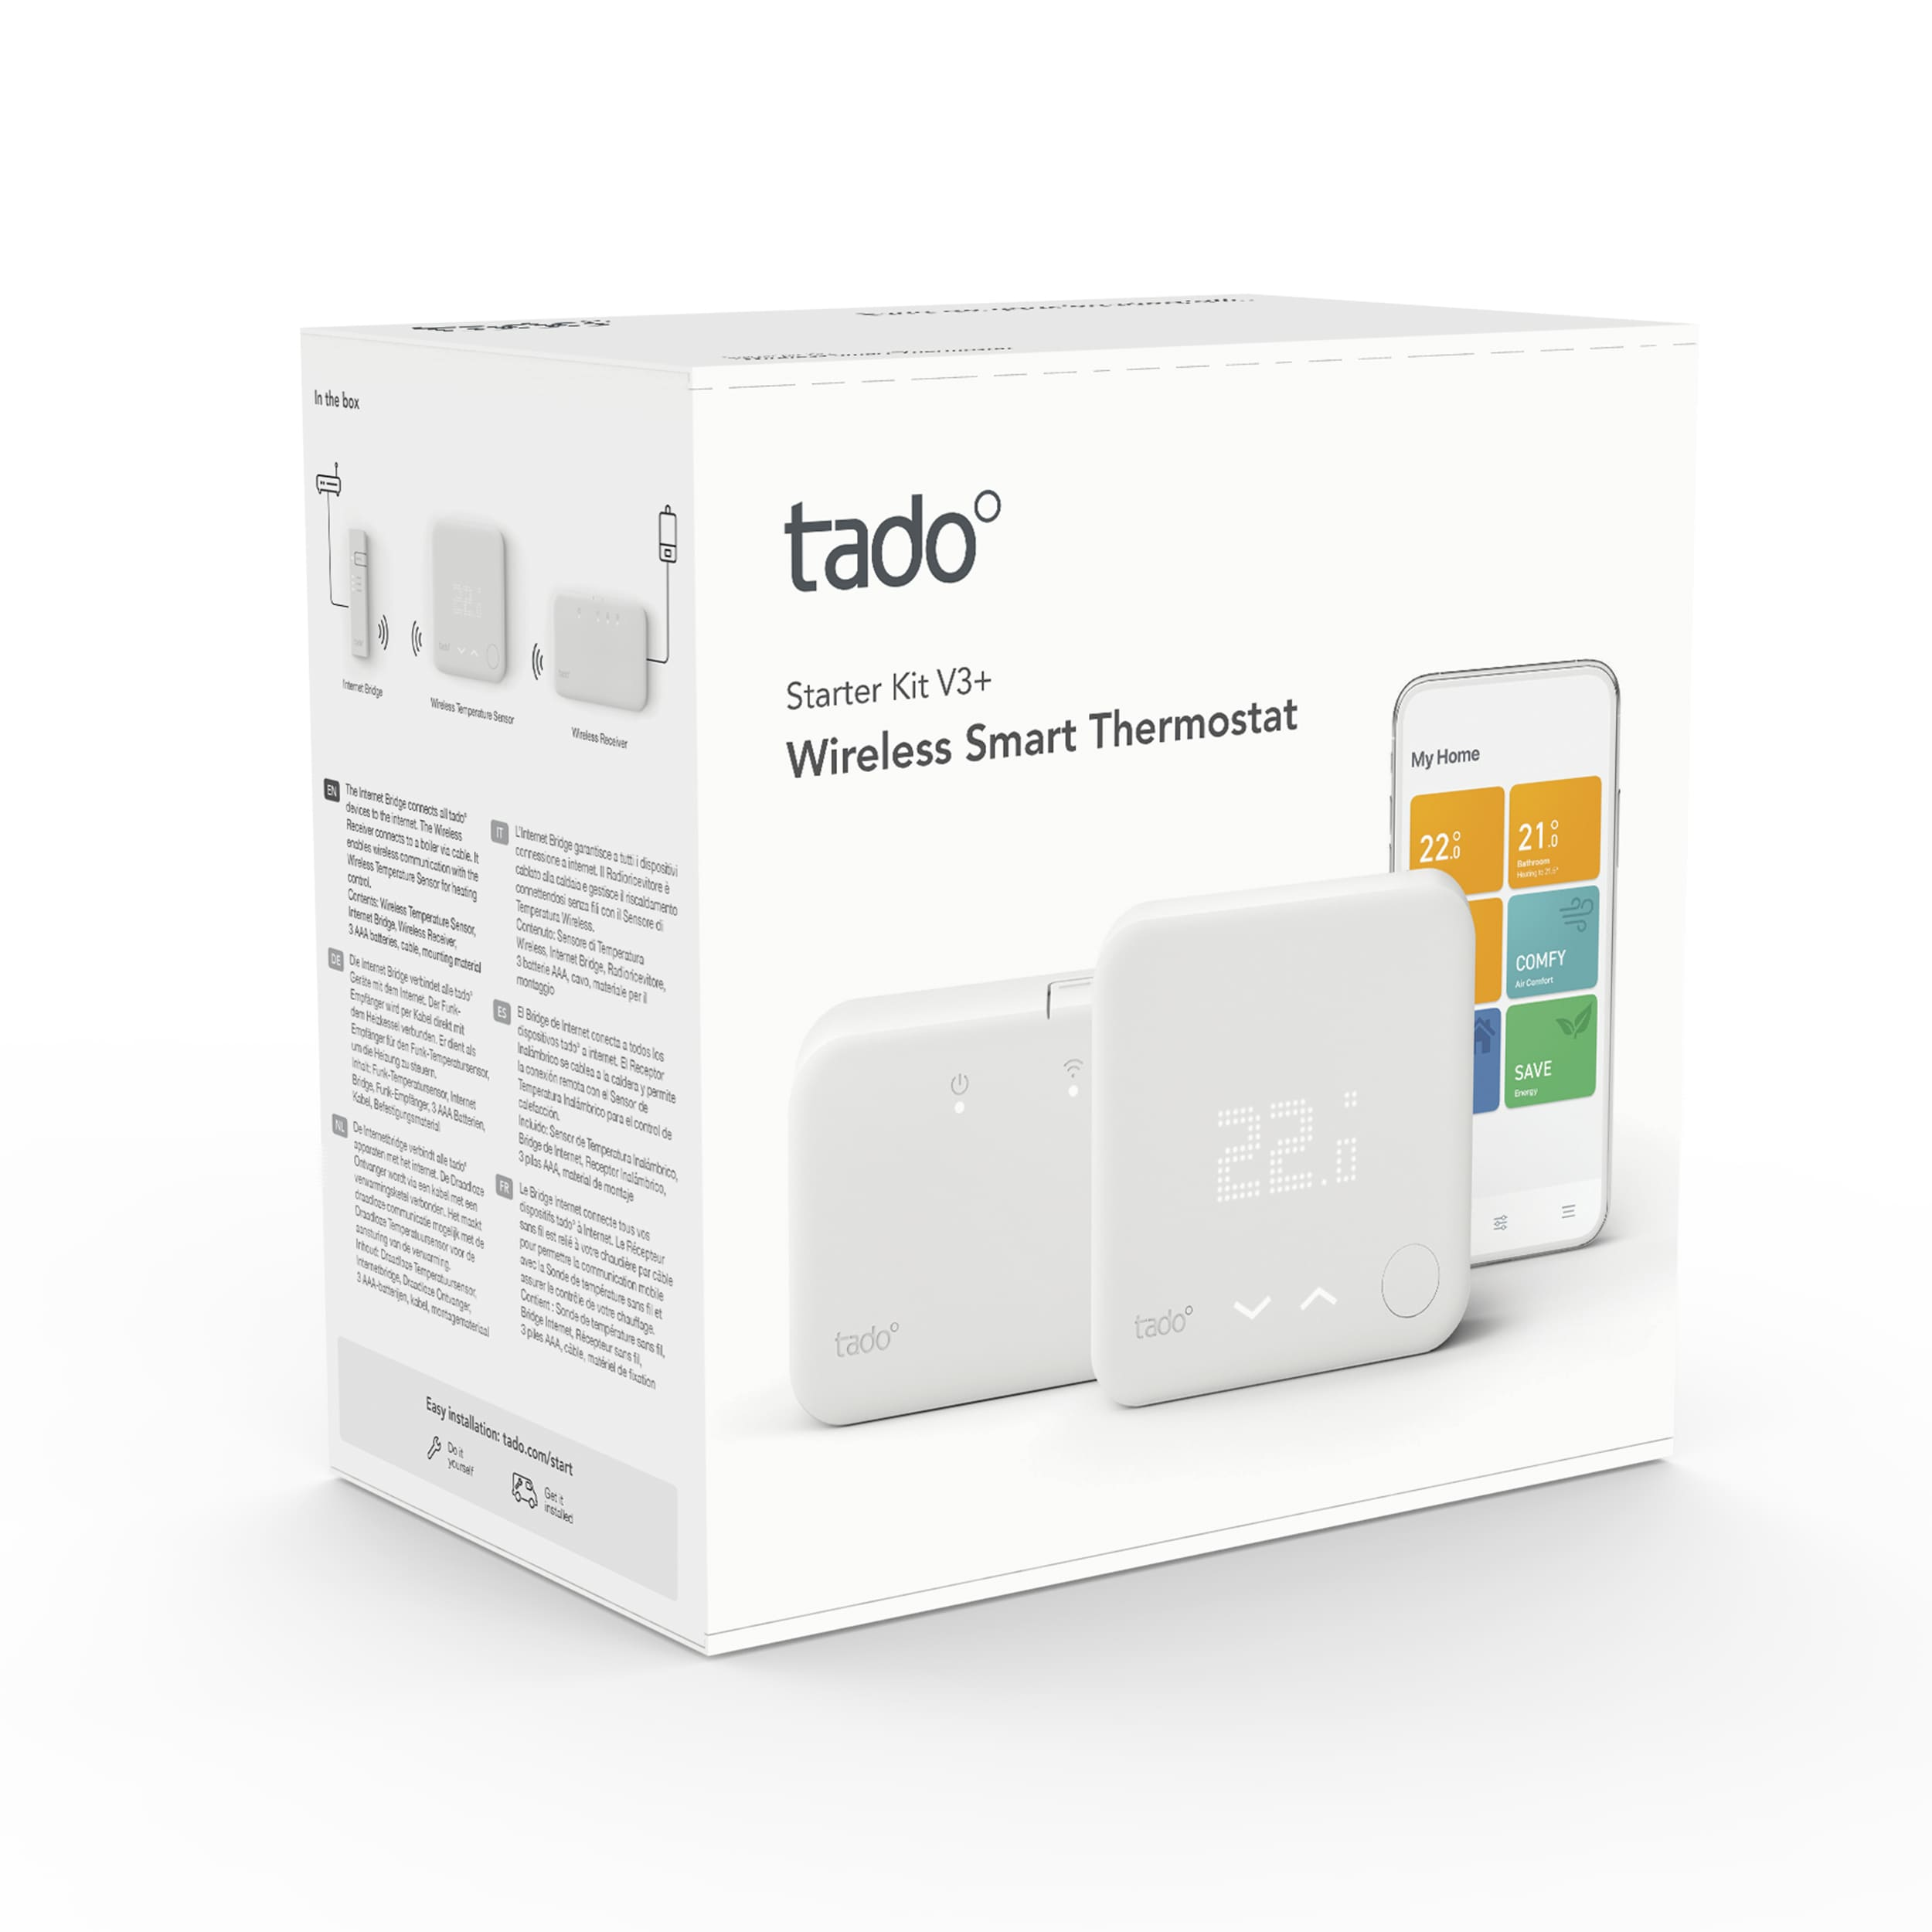 tado° Smart Thermostat Starter Kit V3+ wireless